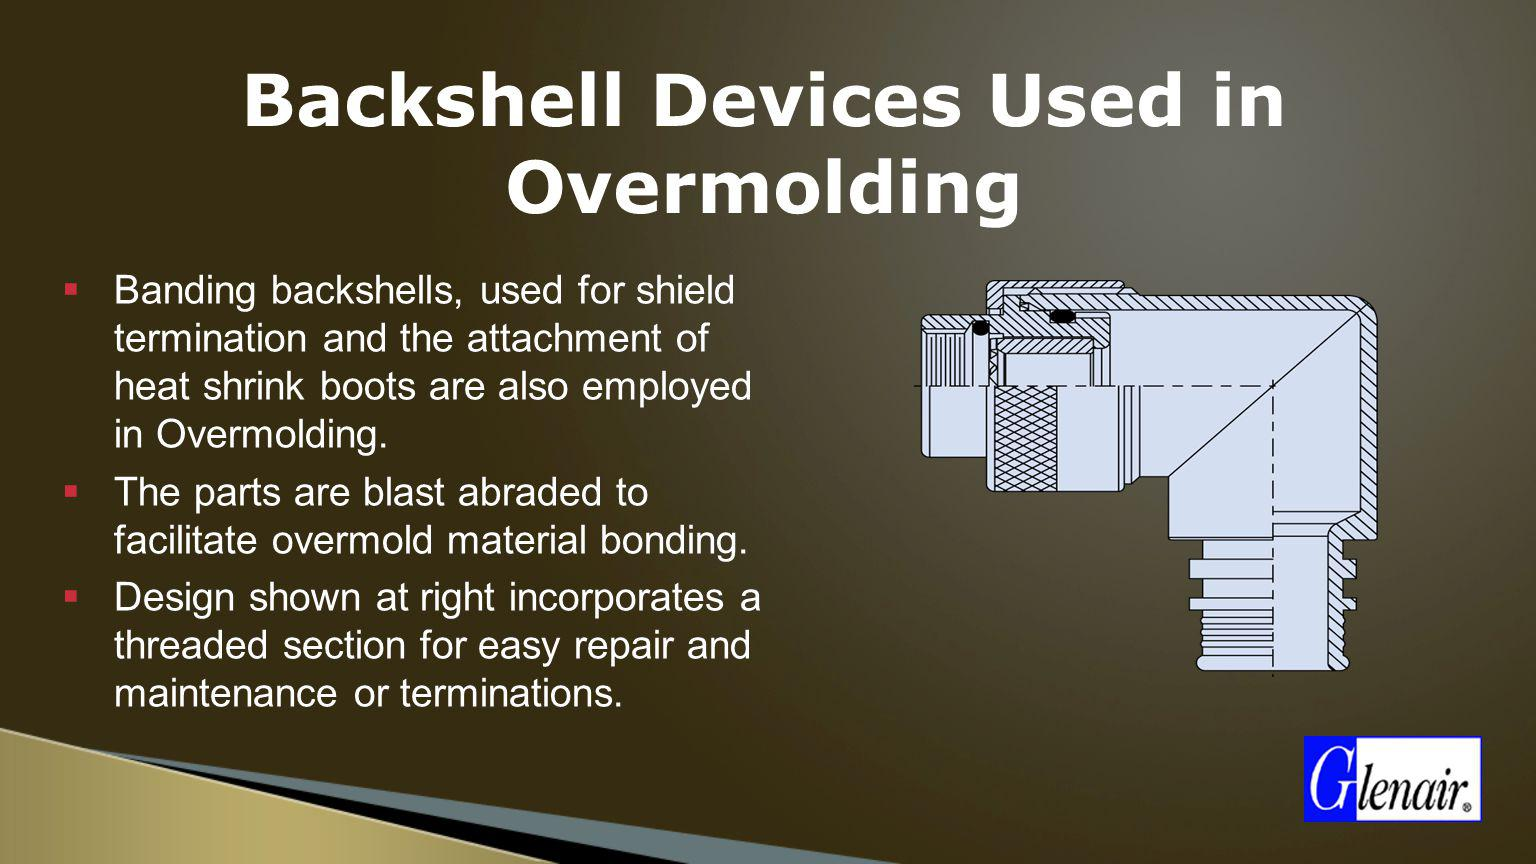 Backshell Devices Used in Overmolding